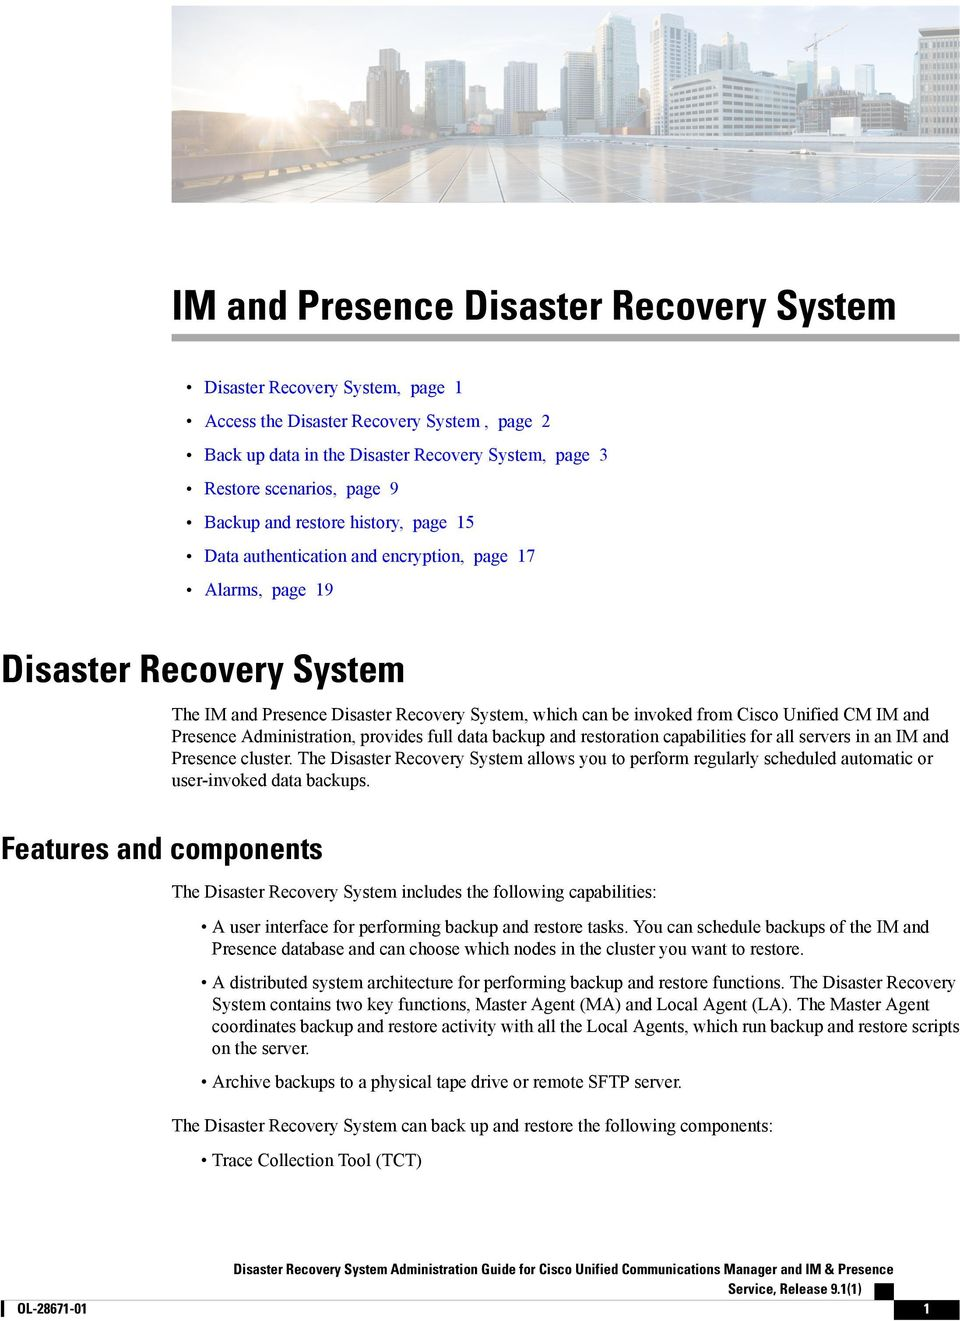 restoration capabilities for all servers in an IM and Presence cluster. The Disaster Recovery System allows you to perform regularly scheduled automatic or user-invoked data backups.